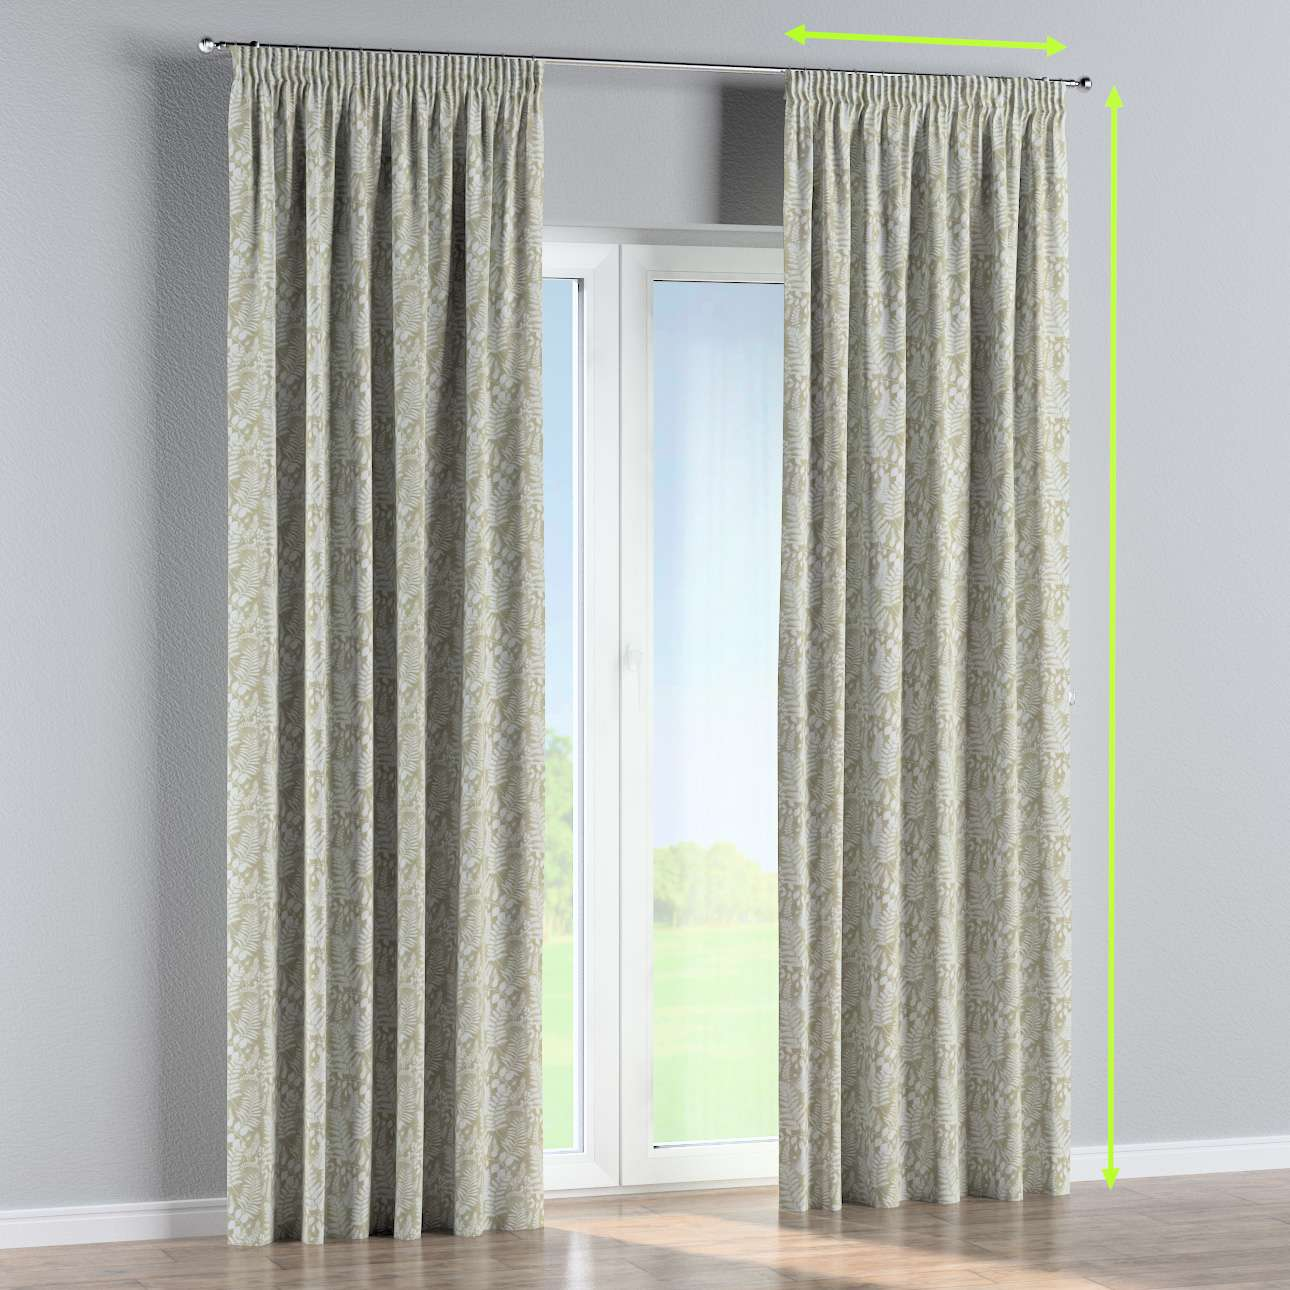 Pencil pleat curtains in collection Pastel Forest, fabric: 142-50